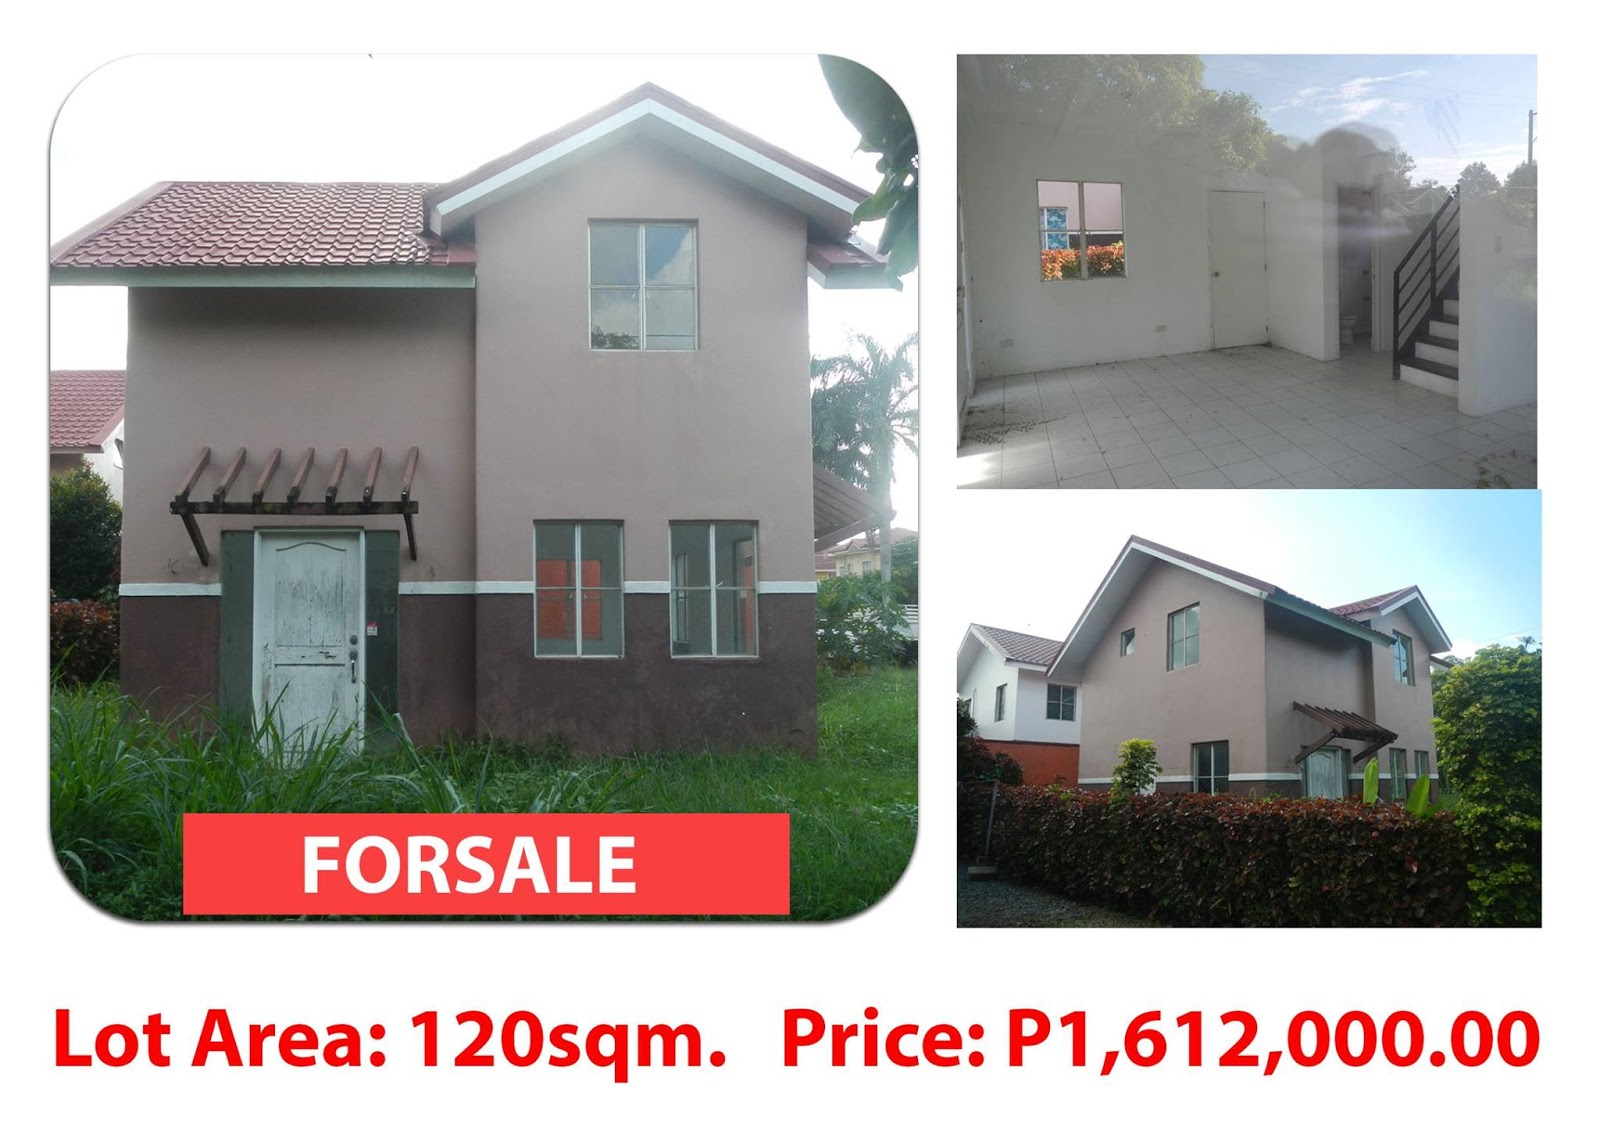 foreclosed house and lot philippines